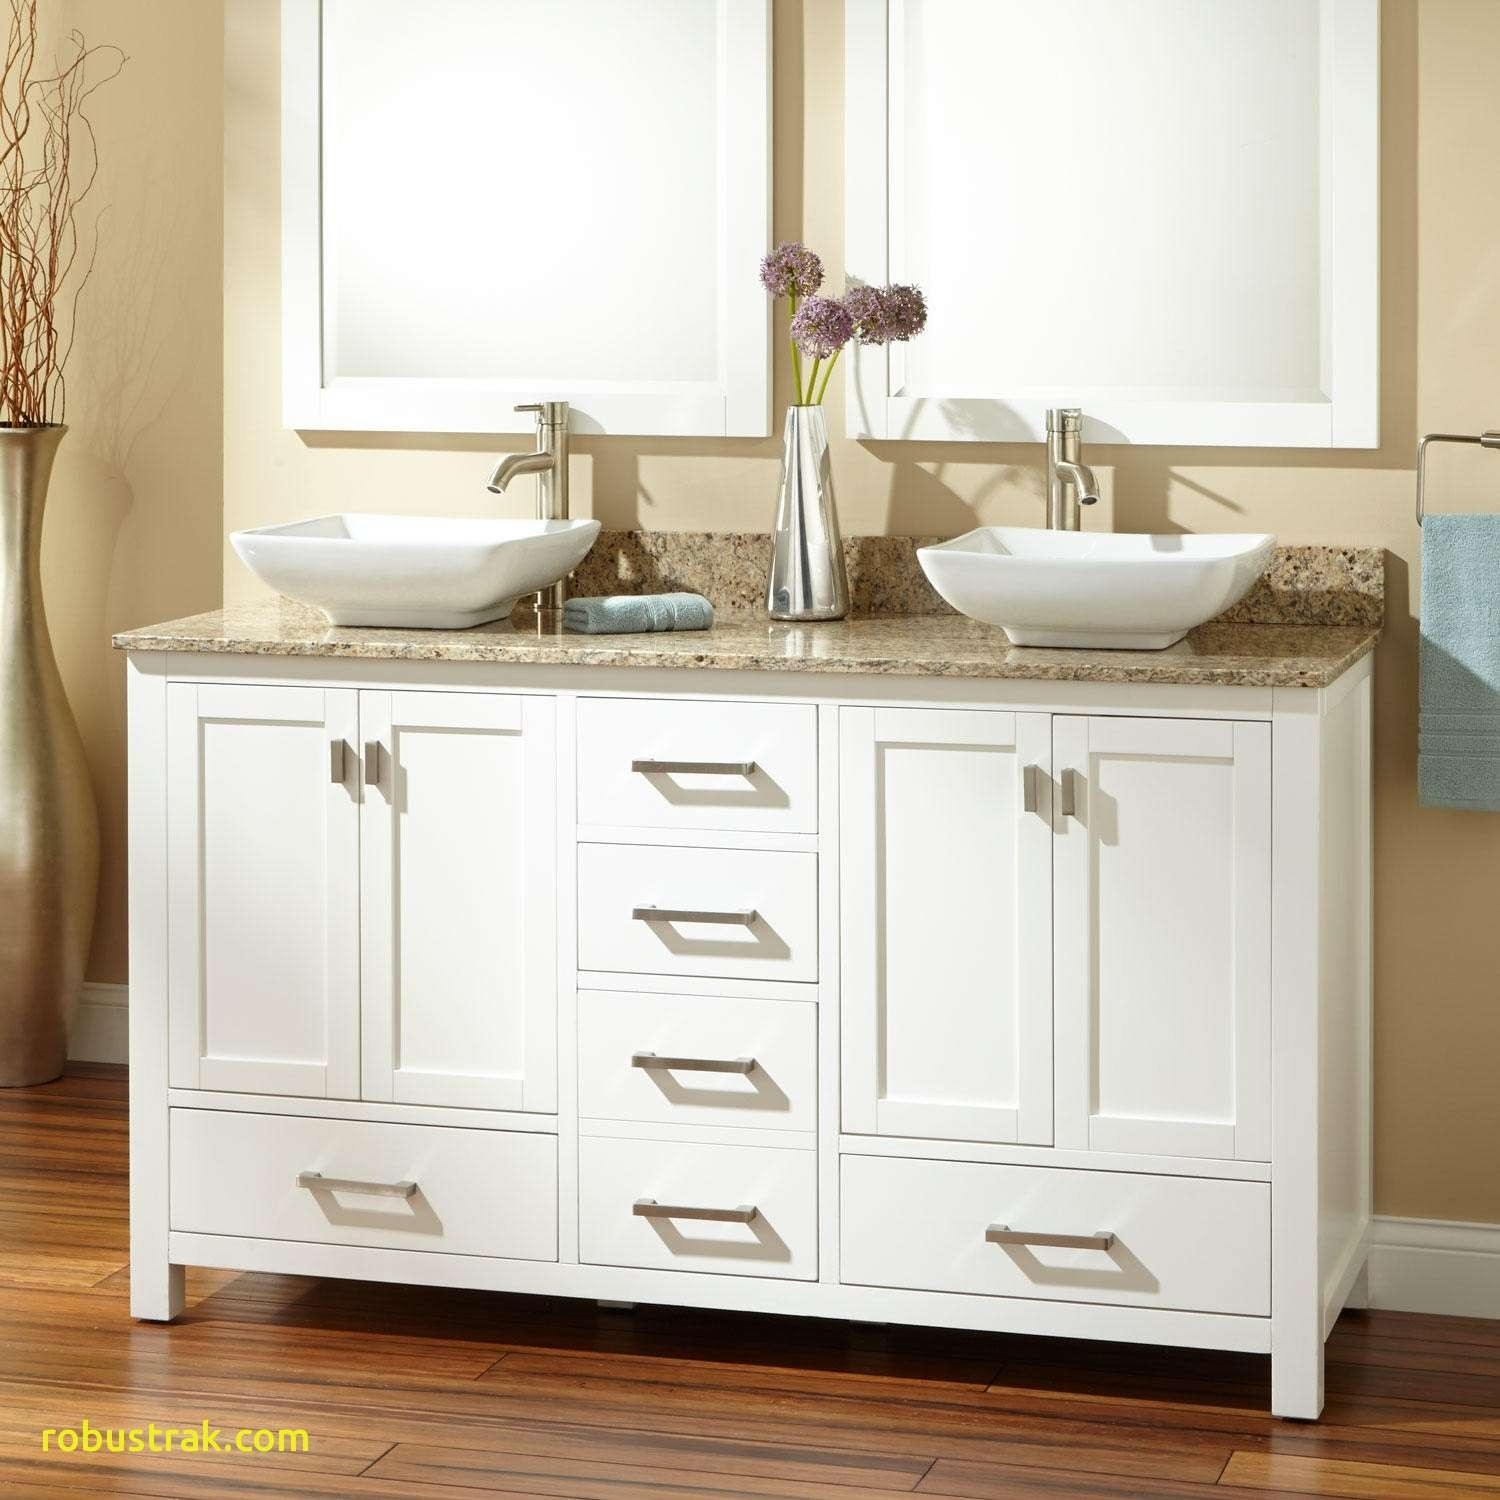 Fantastic Closeout Bathroom Vanities And Sinks Fancy Beautiful 84 Home Interior And Landscaping Ferensignezvosmurscom